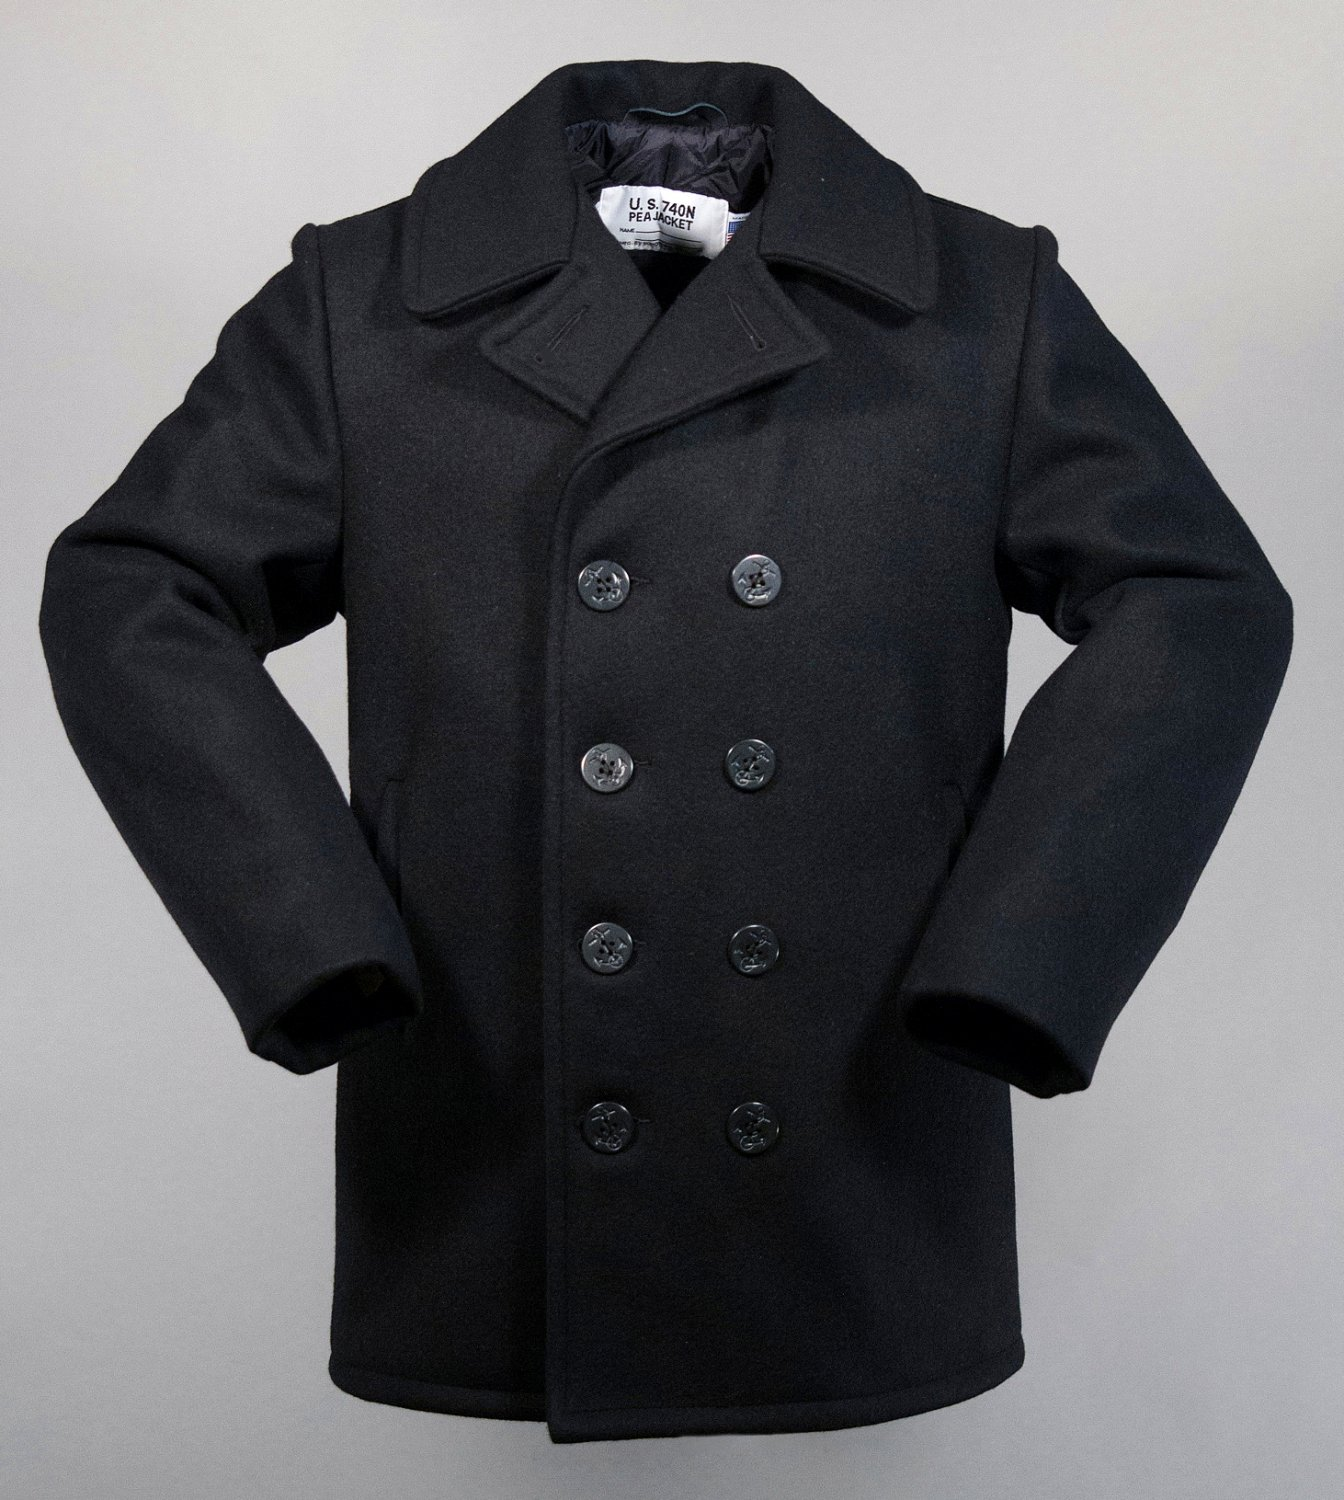 Schott USA Classic Melton Wool Pea Coat 32oz 740 N Size 54 Long NEW w/Tags